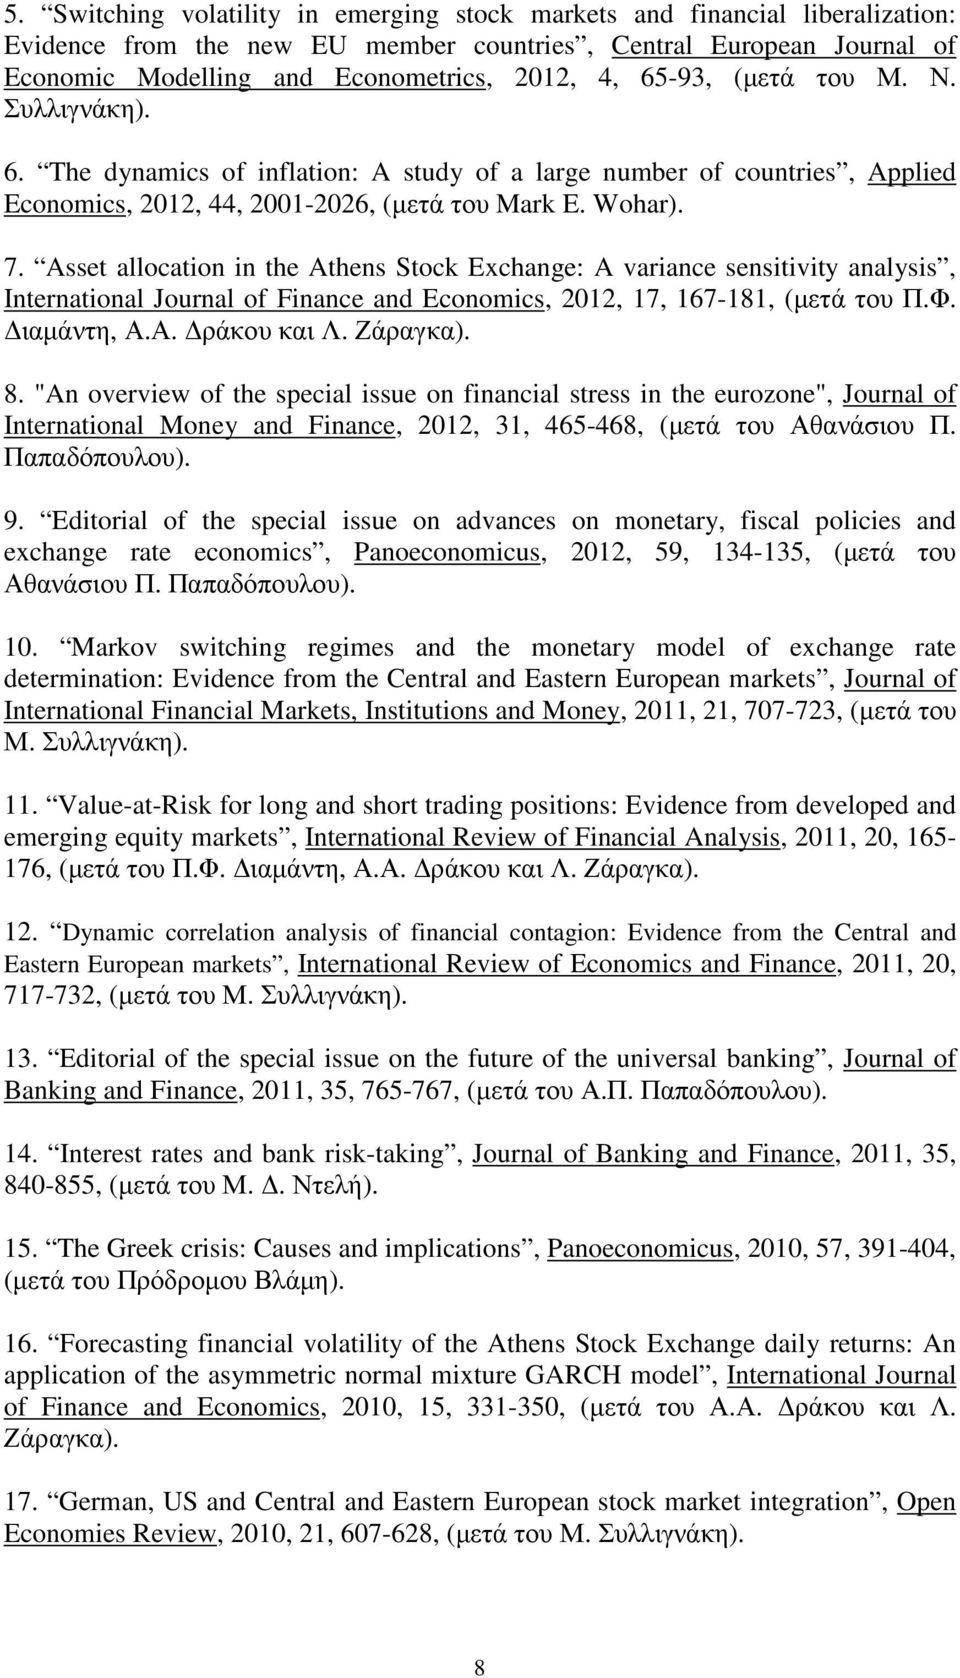 Asset allocation in the Athens Stock Exchange: A variance sensitivity analysis, International Journal of Finance and Economics, 2012, 17, 167-181, (µετά του Π.Φ. ιαµάντη, Α.Α. ράκου και Λ. Ζάραγκα).